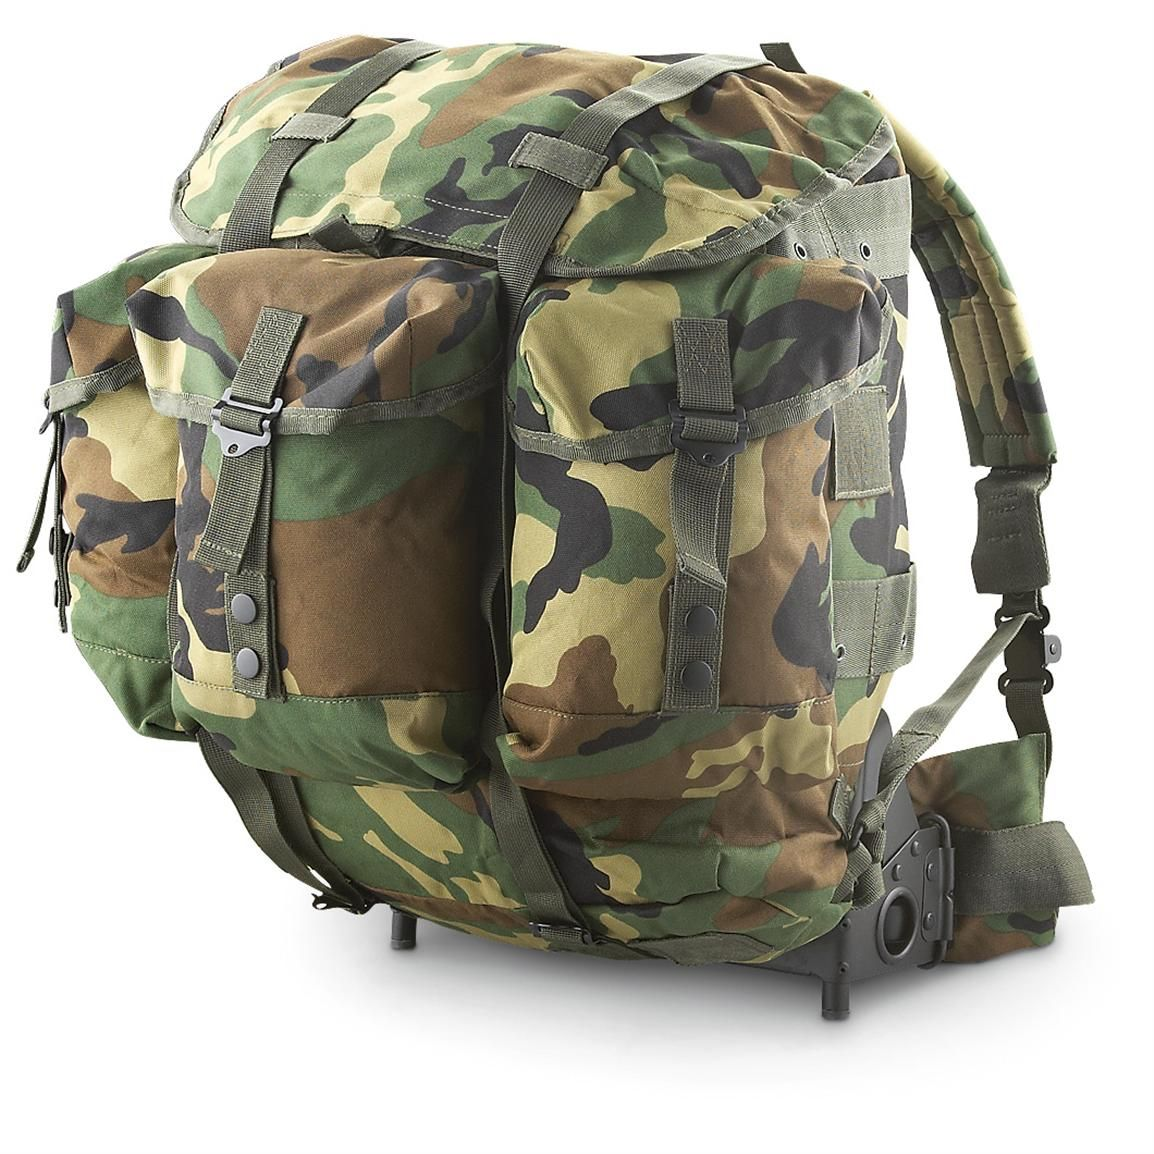 U S Military Style Medium A L I C E Pack Complete Woodland 219924 Rucksacks Backpacks At Sportsman Body Armor Tactical Military Gear Military Fashion